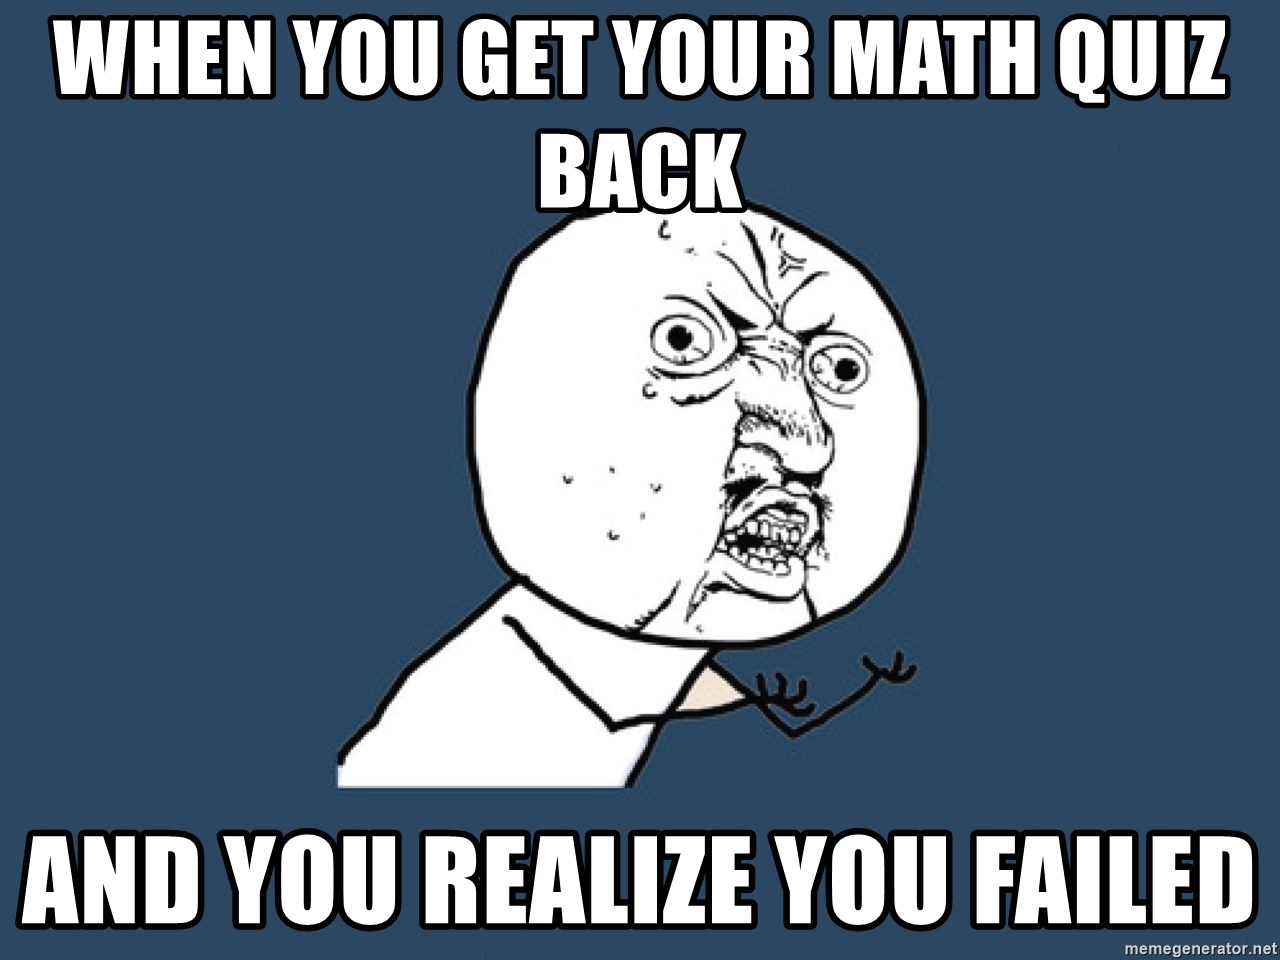 wHEN YOU GET YOUR MATH QUIZ BACK aND YOU REALIZE YOU FAILED - Y U No ...